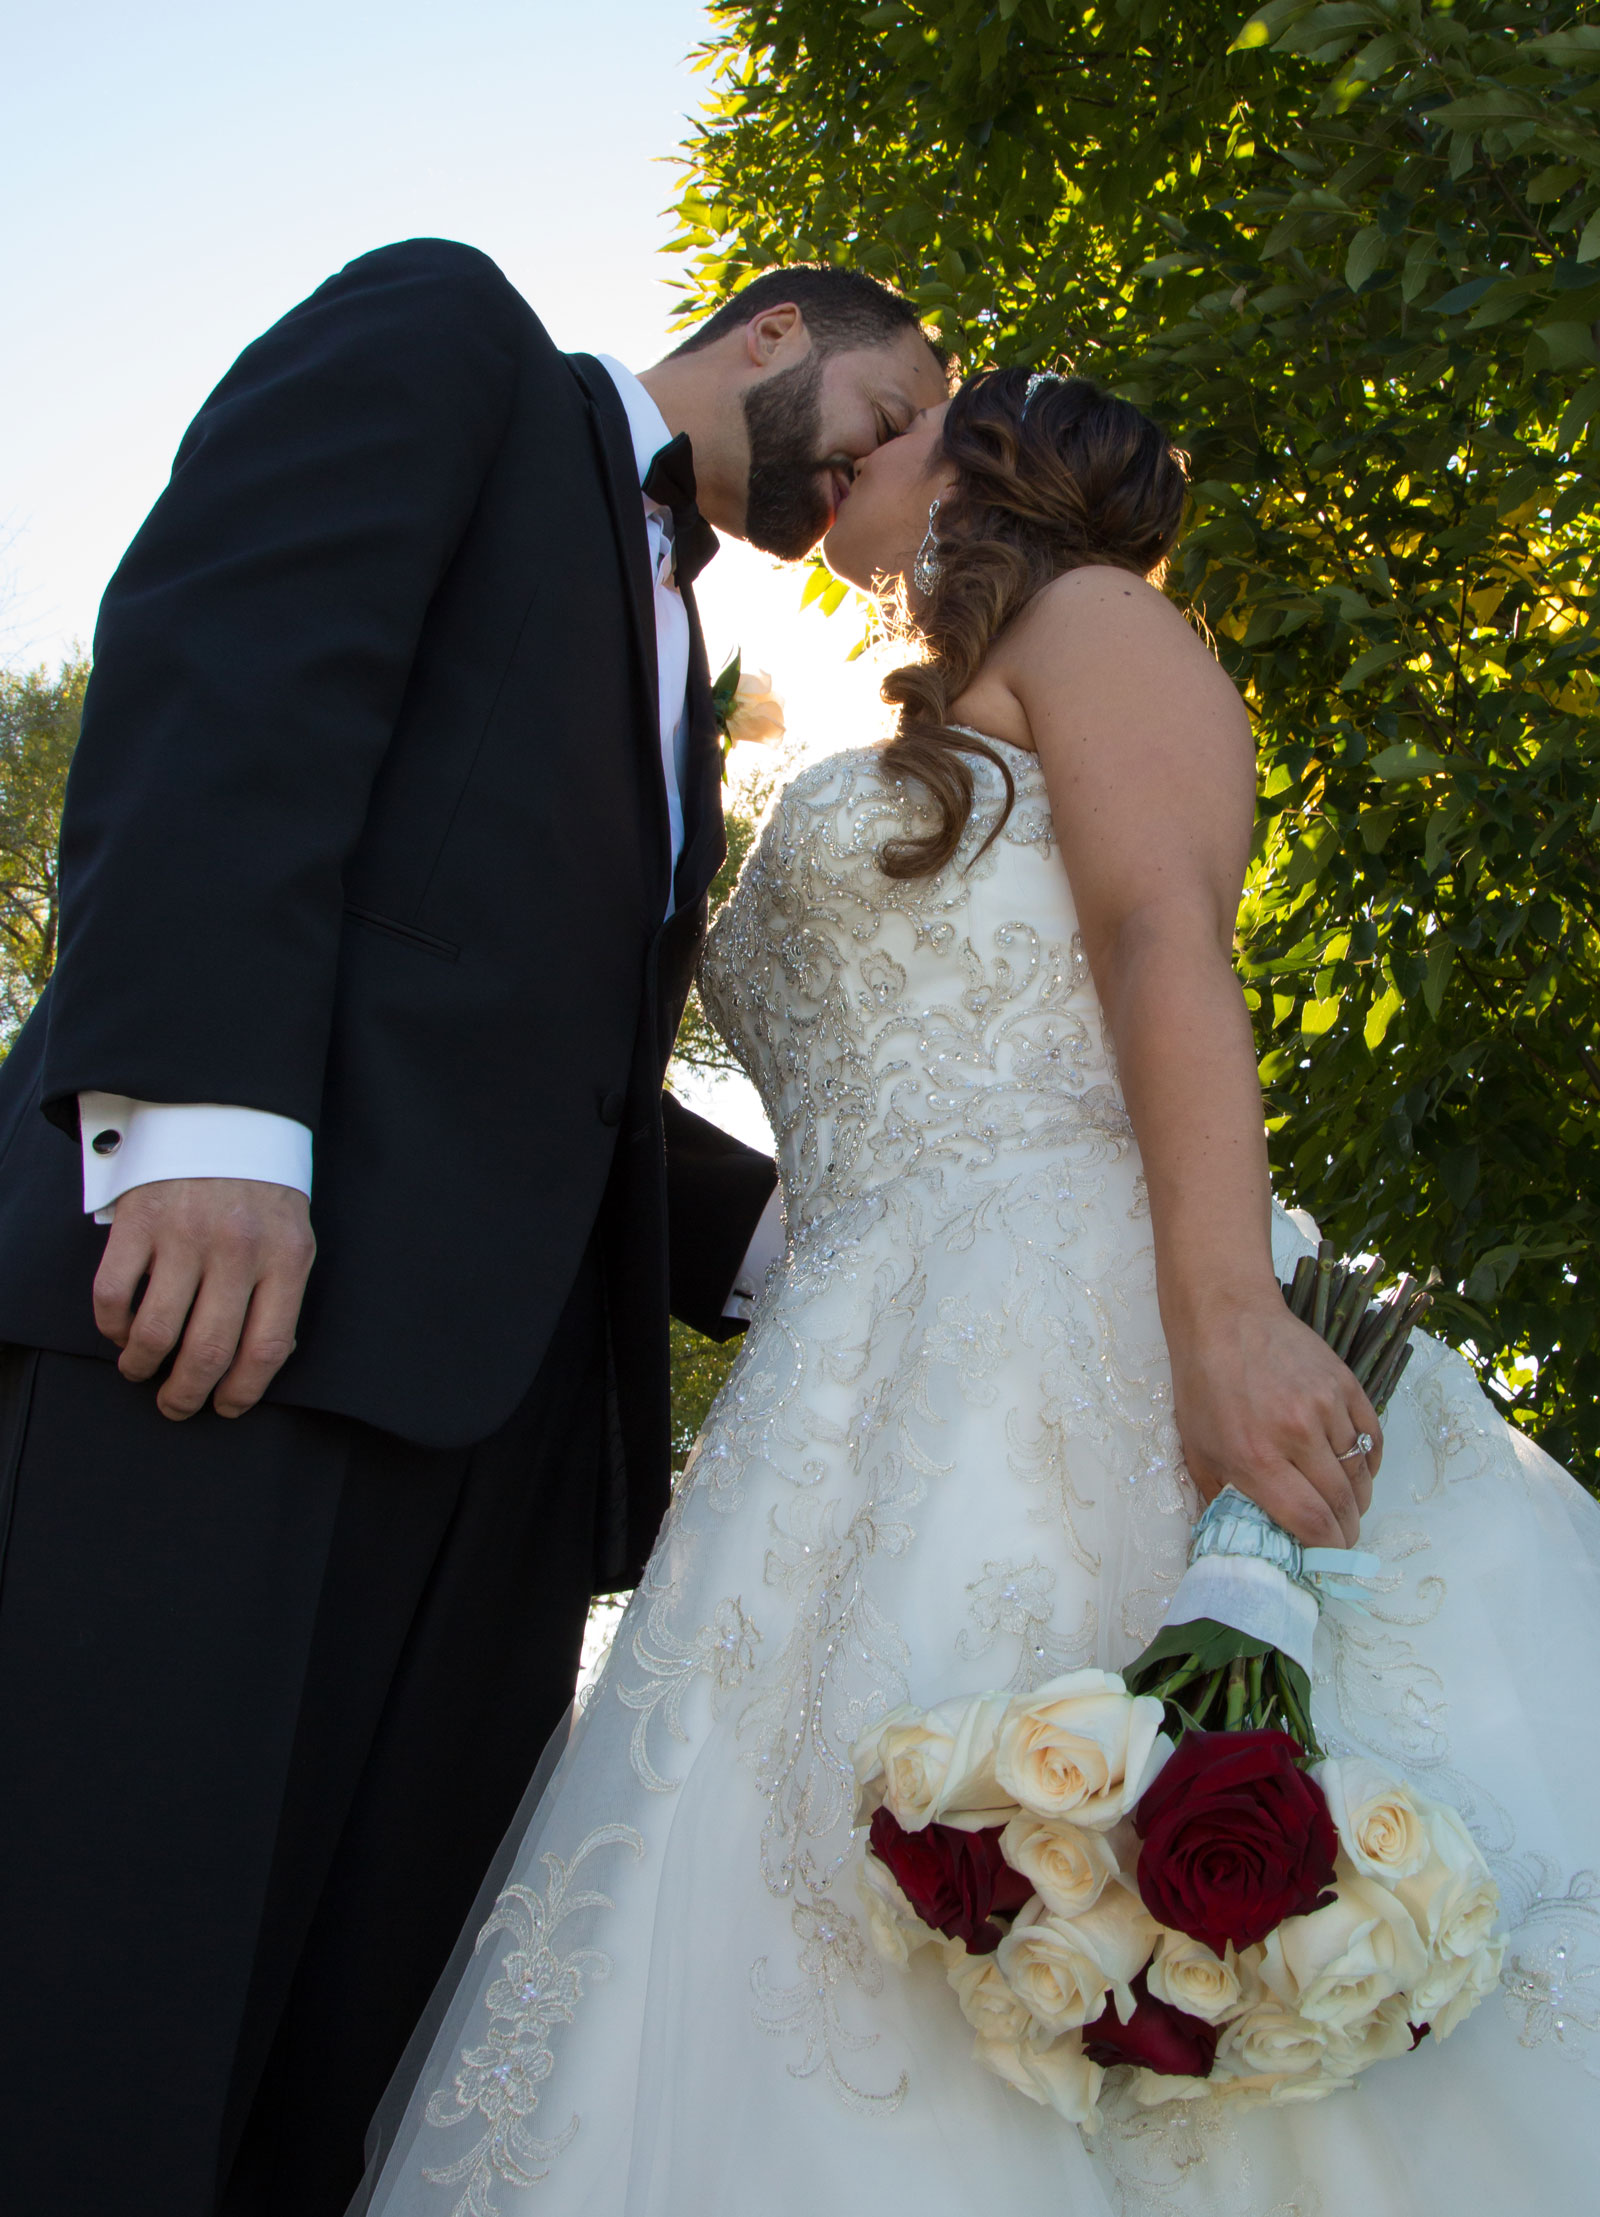 Lackawanna, NY Wedding bride groom kiss